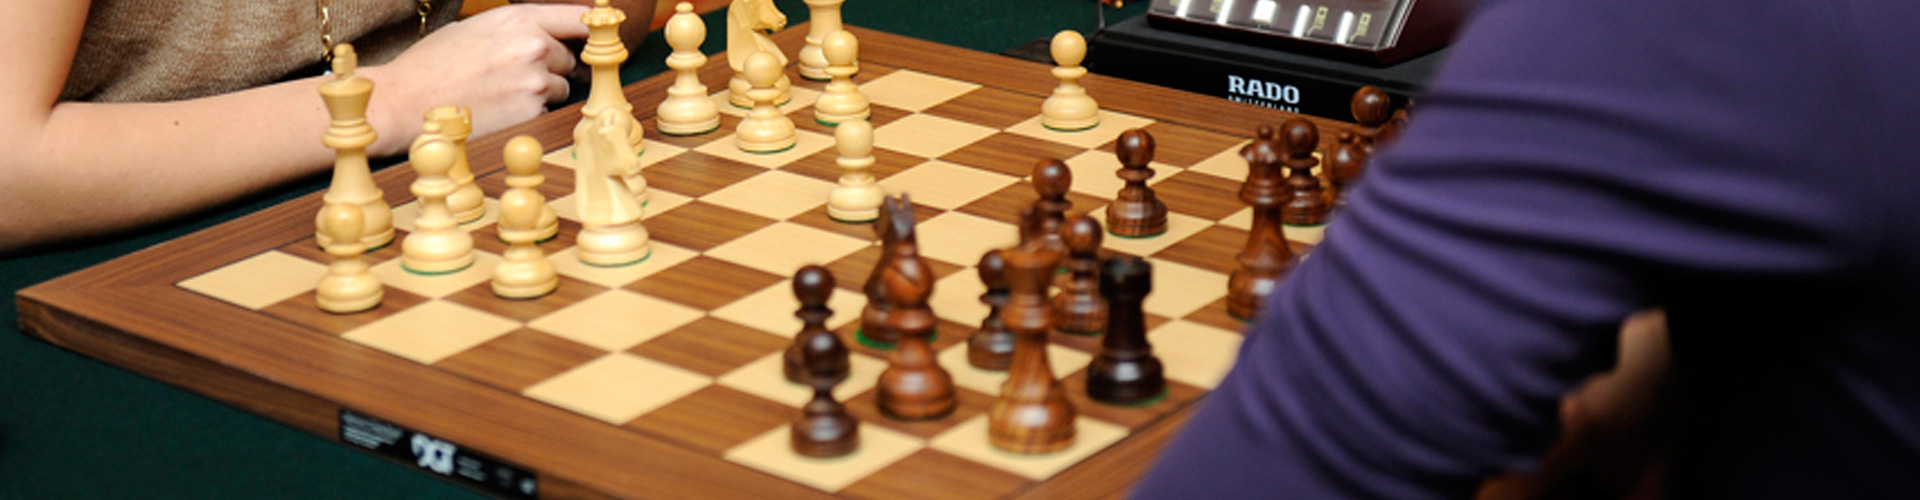 Where to find the Chess results